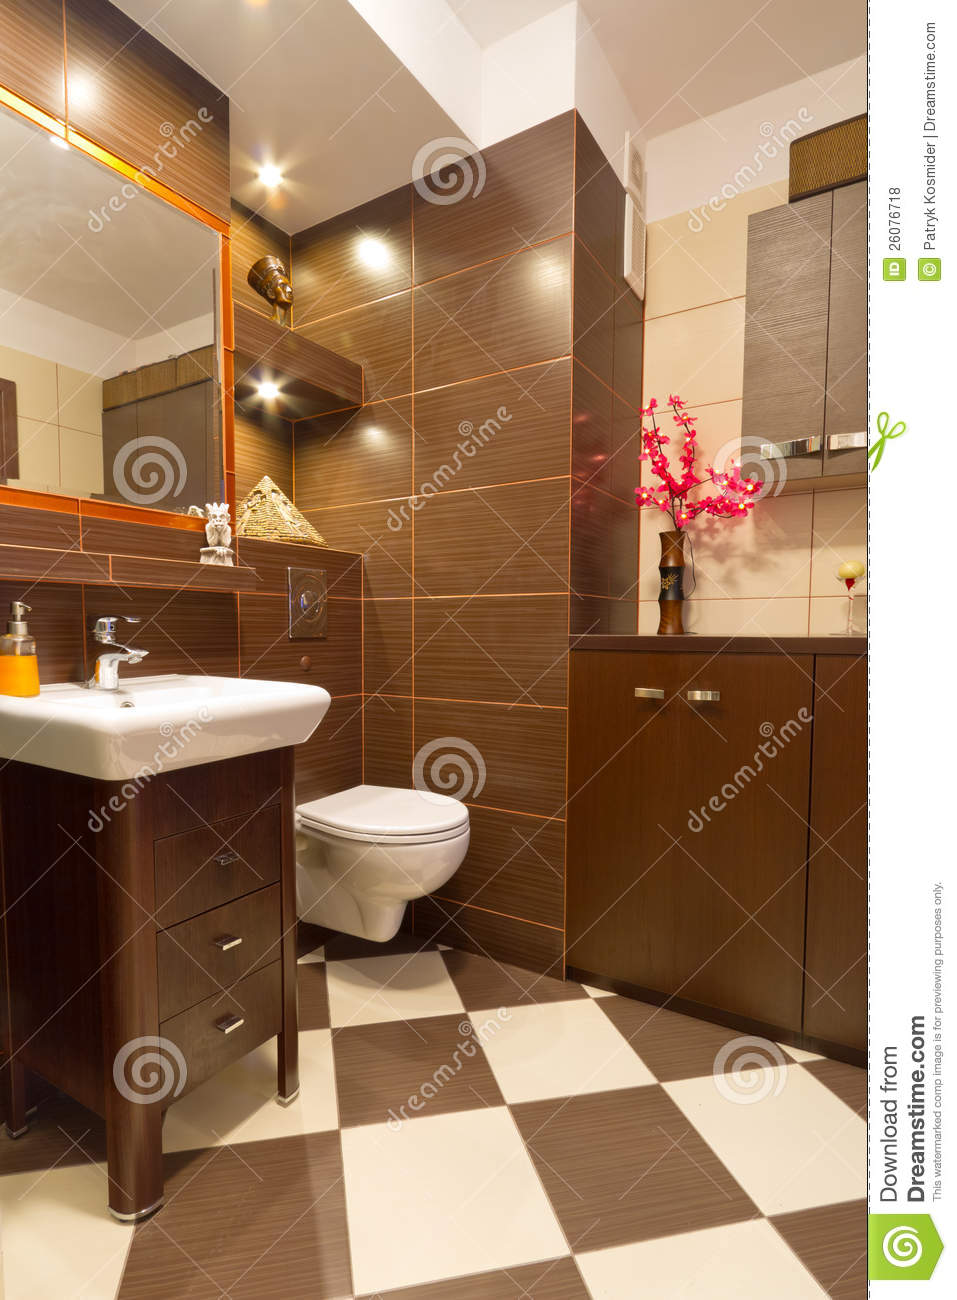 Bathroom interior with brown and beige tiles stock photo image 26076718 Beige brown bathroom design